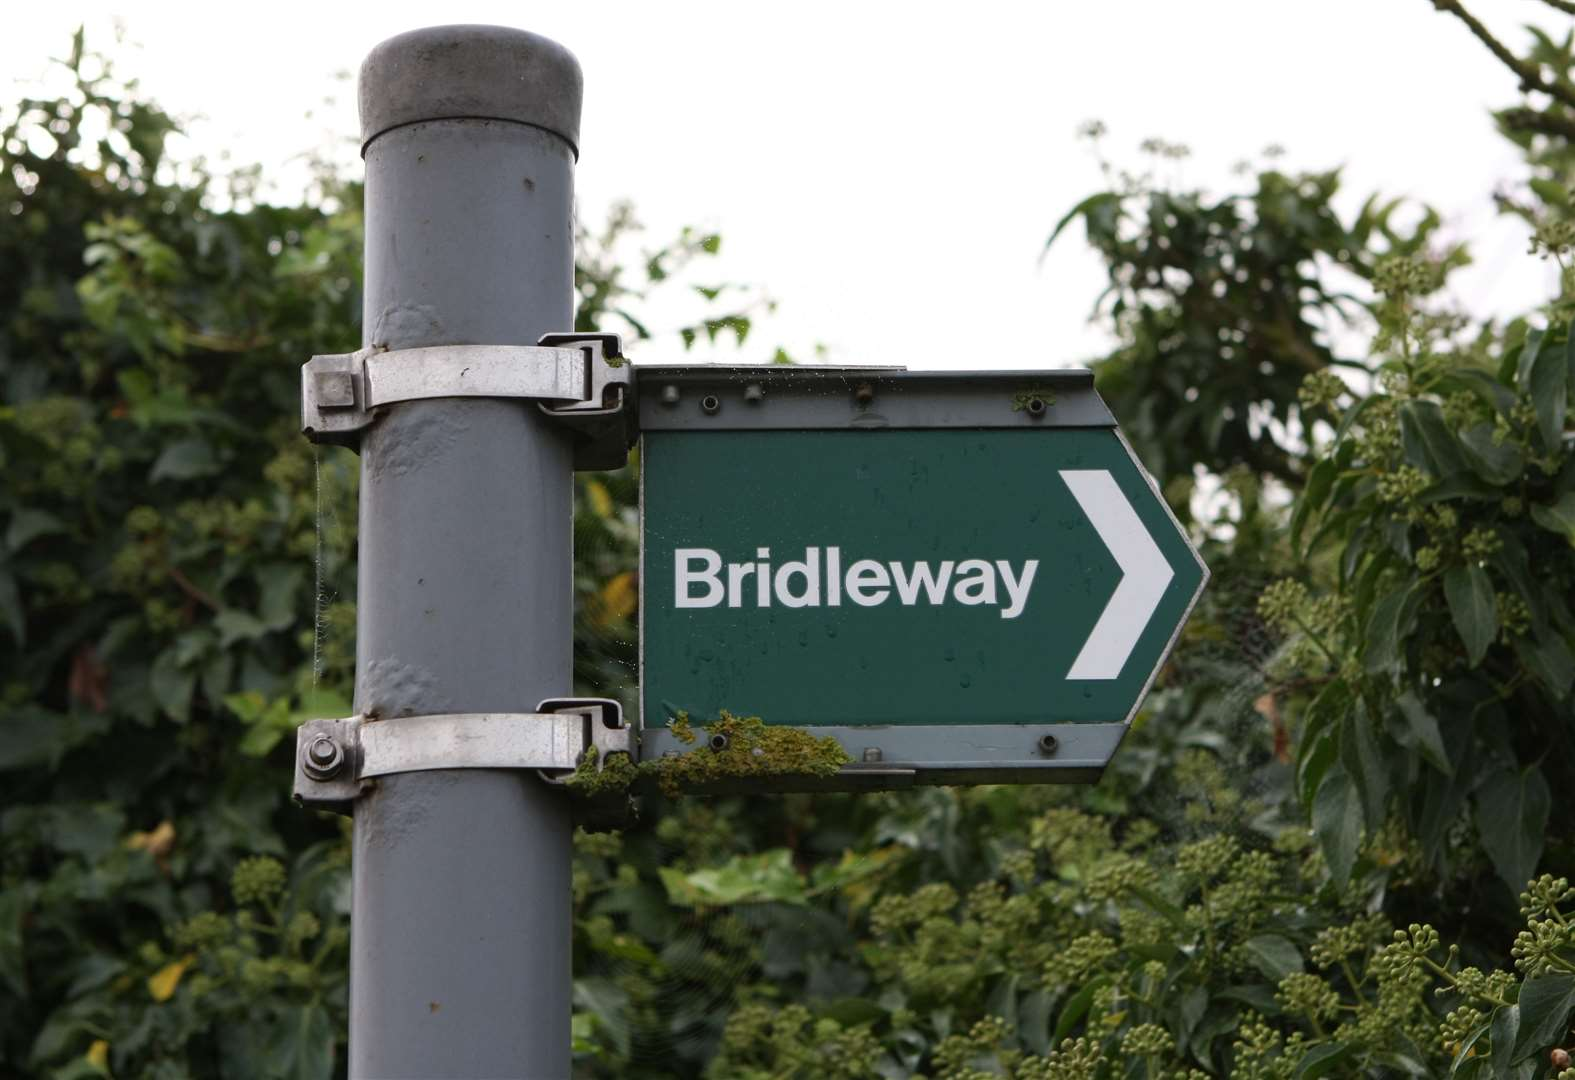 Work on £150,000 project to improve Bury St Edmunds bridleway to start next week